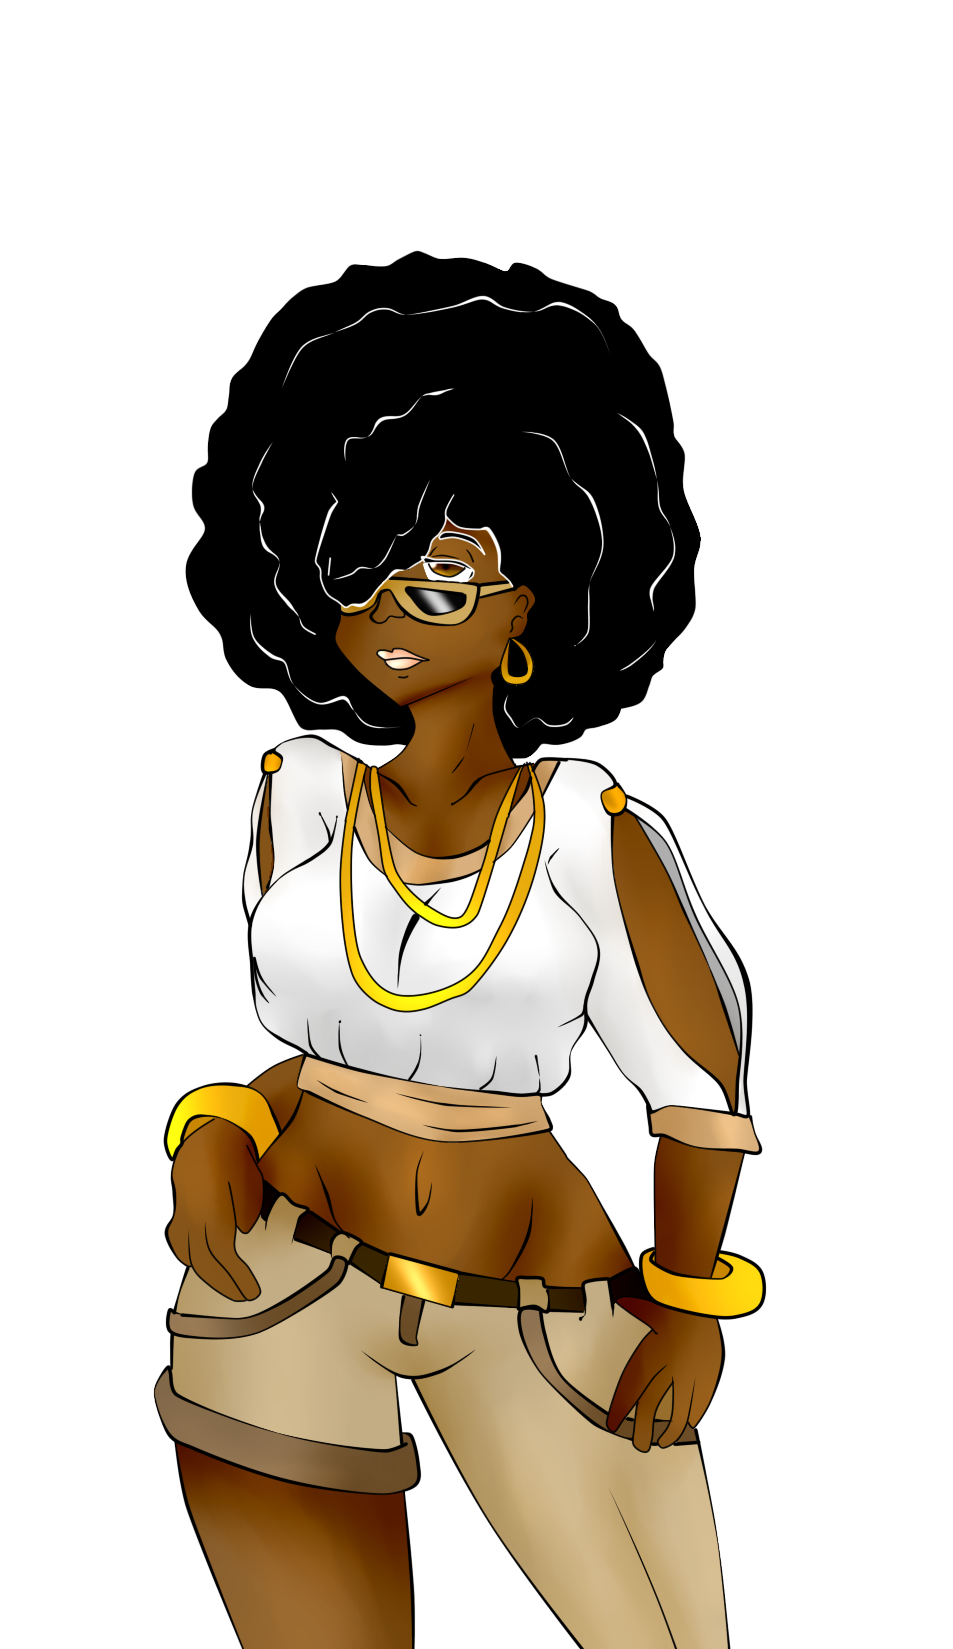 Afro woman clipart in color svg free Afro girl | Black Art | Black girl art, Afro girl, Black women art svg free